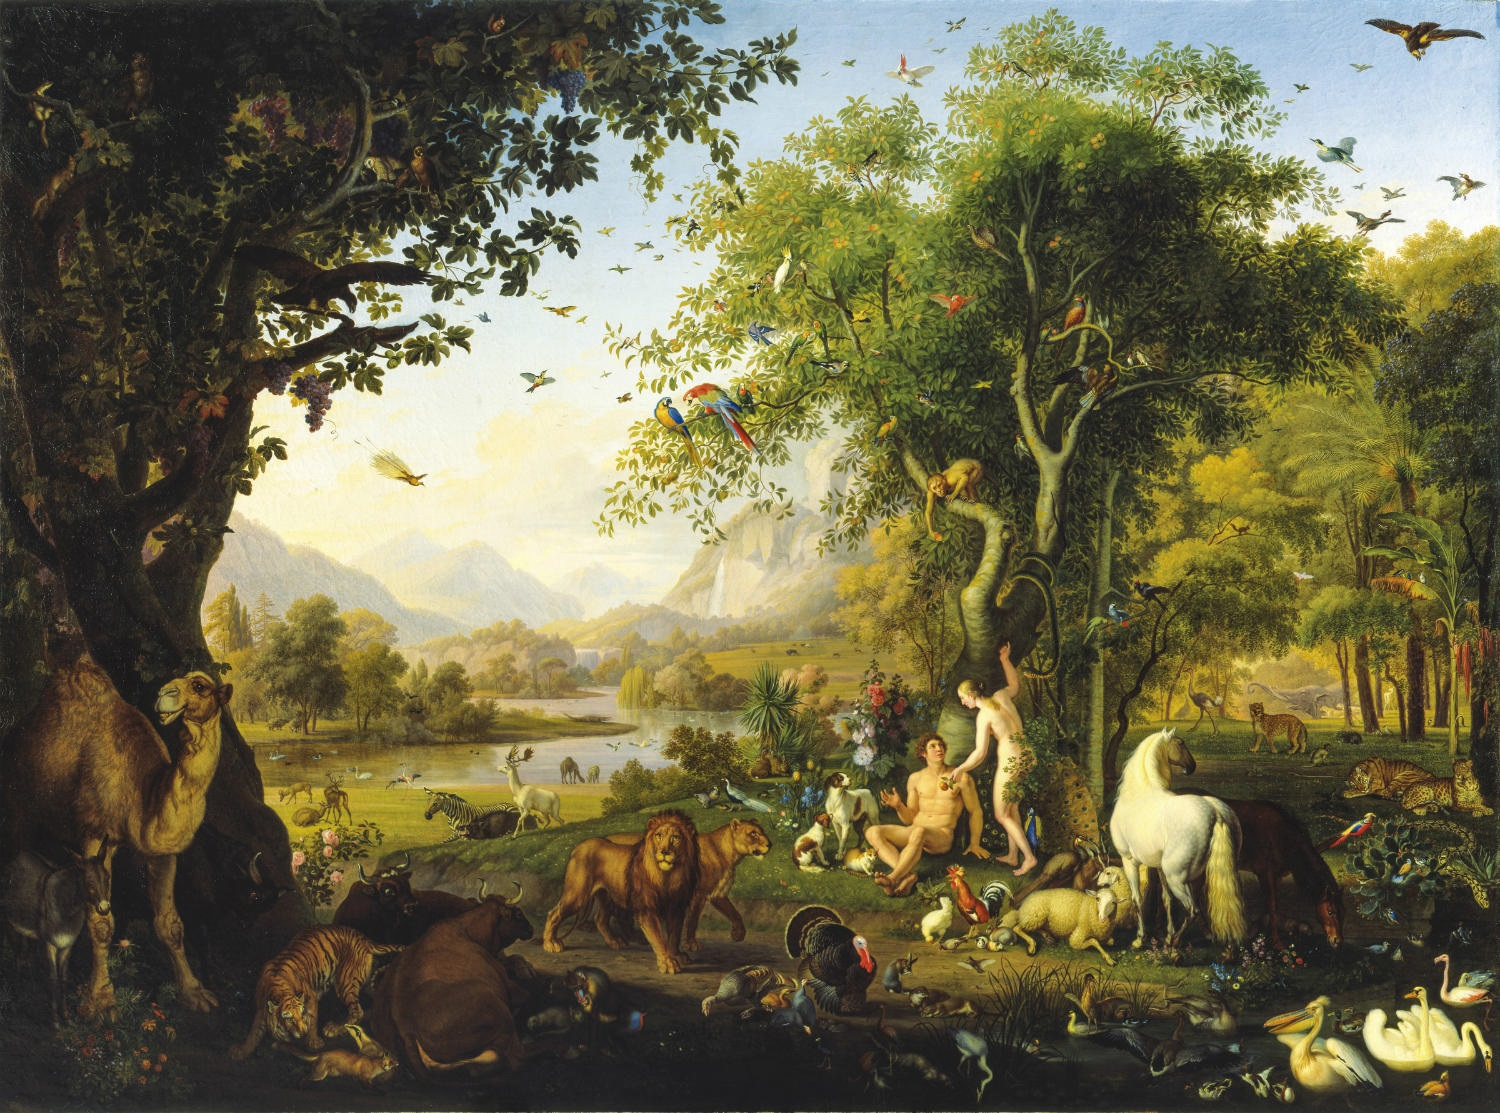 Johann_Wenzel_Peter_-_Adam_and_Eve_in_the_earthly_paradise